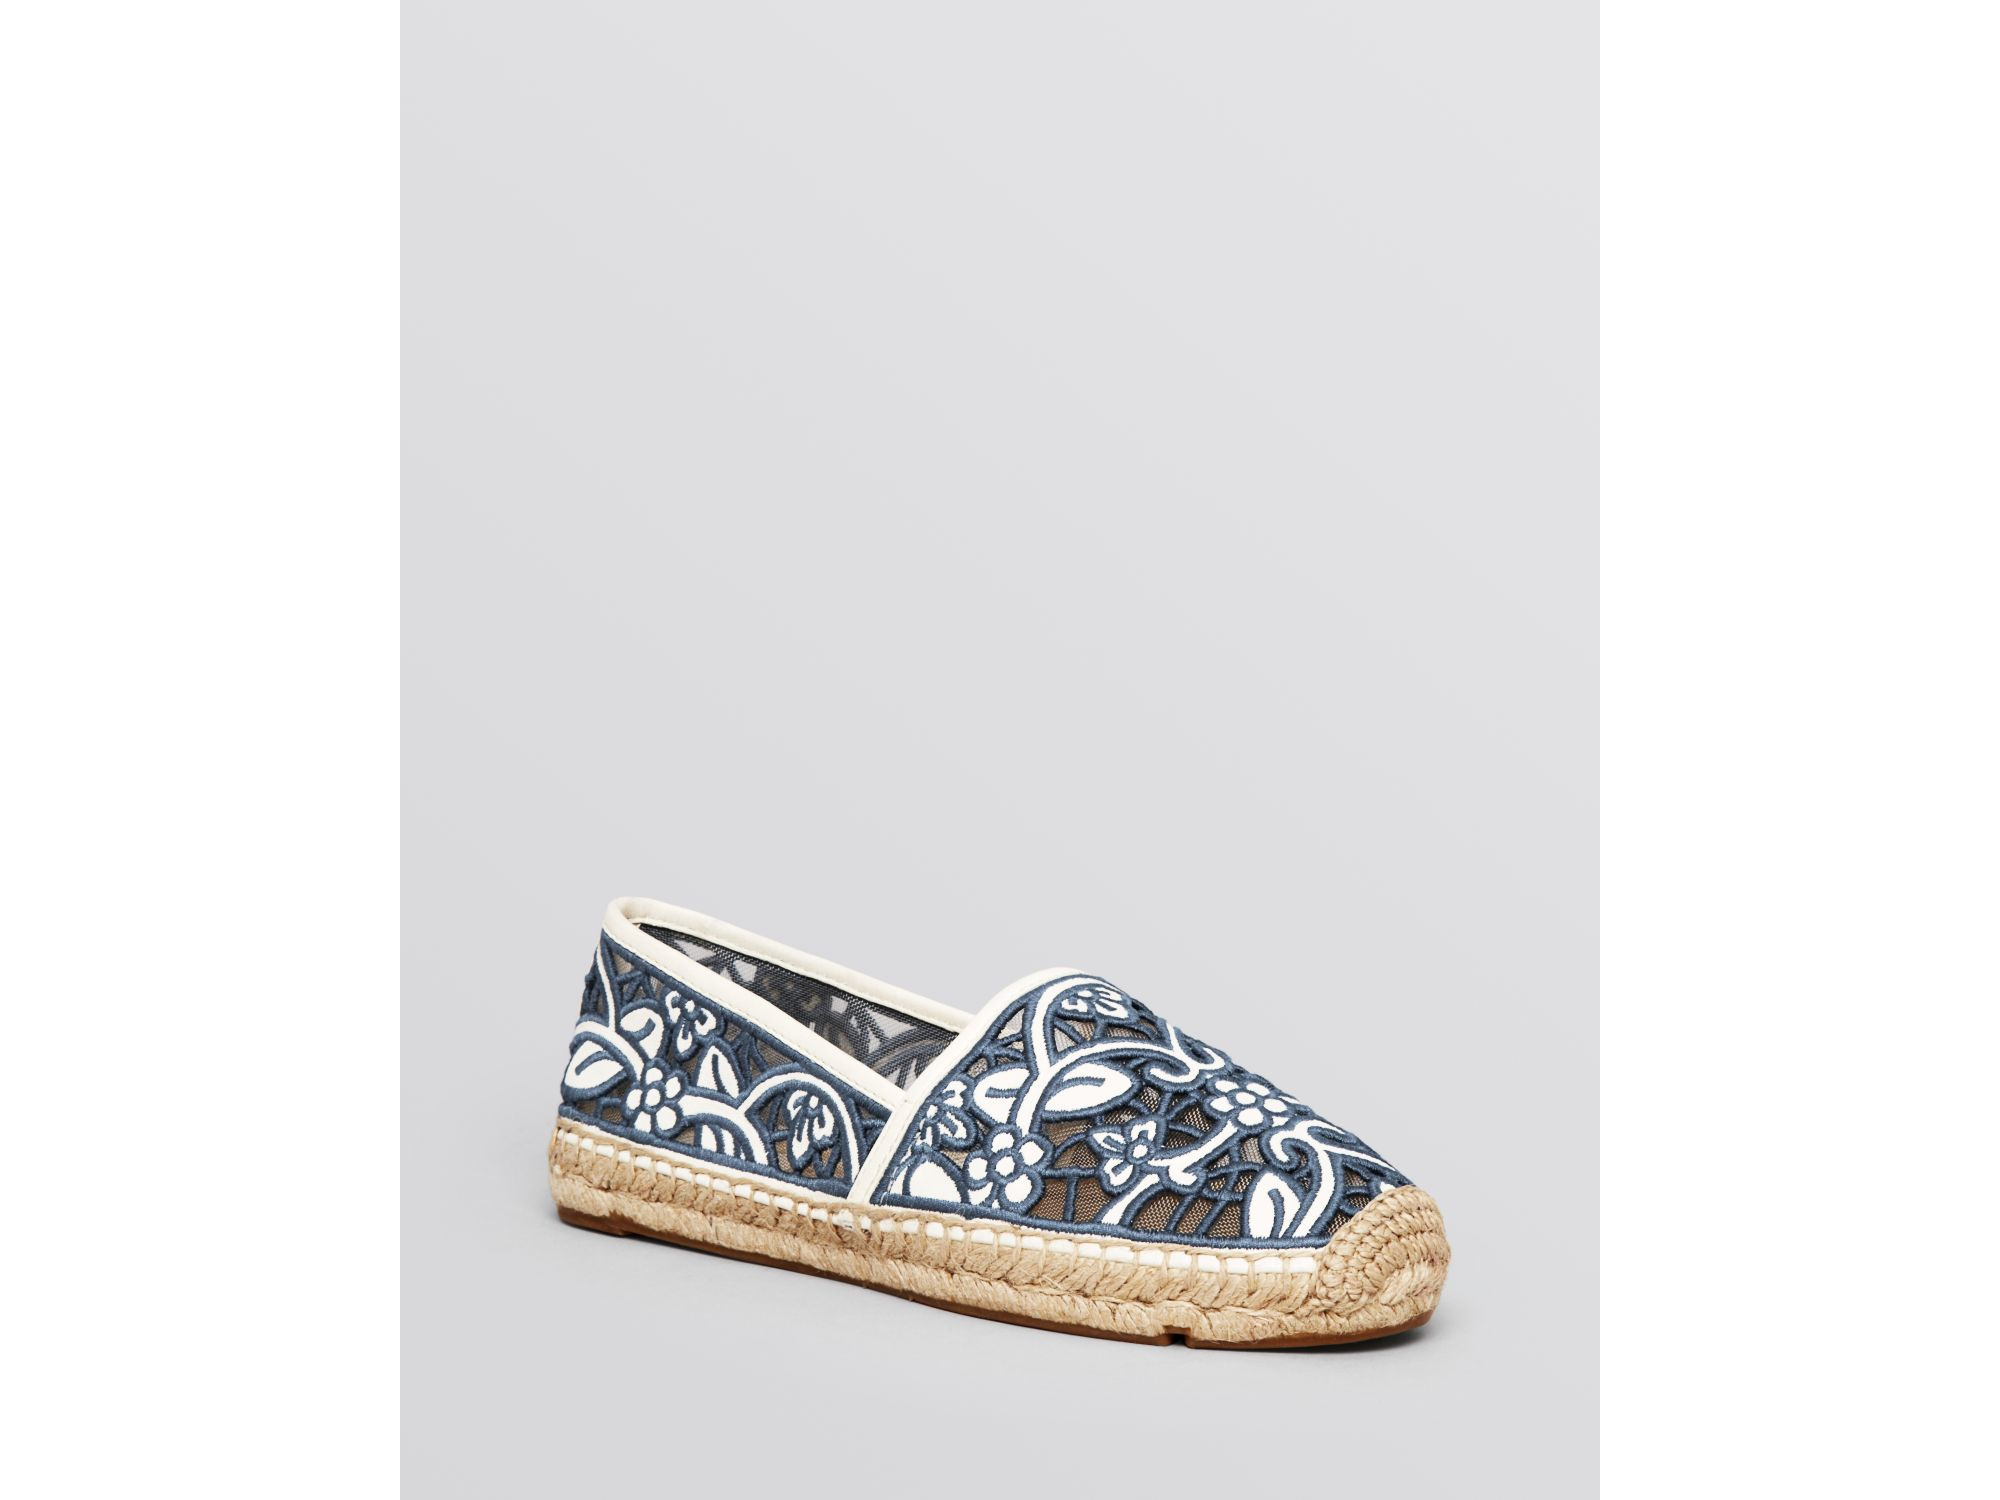 7a45a18d2c0 ... new style lyst tory burch espadrille flats lucia lace in black f2503  9447a